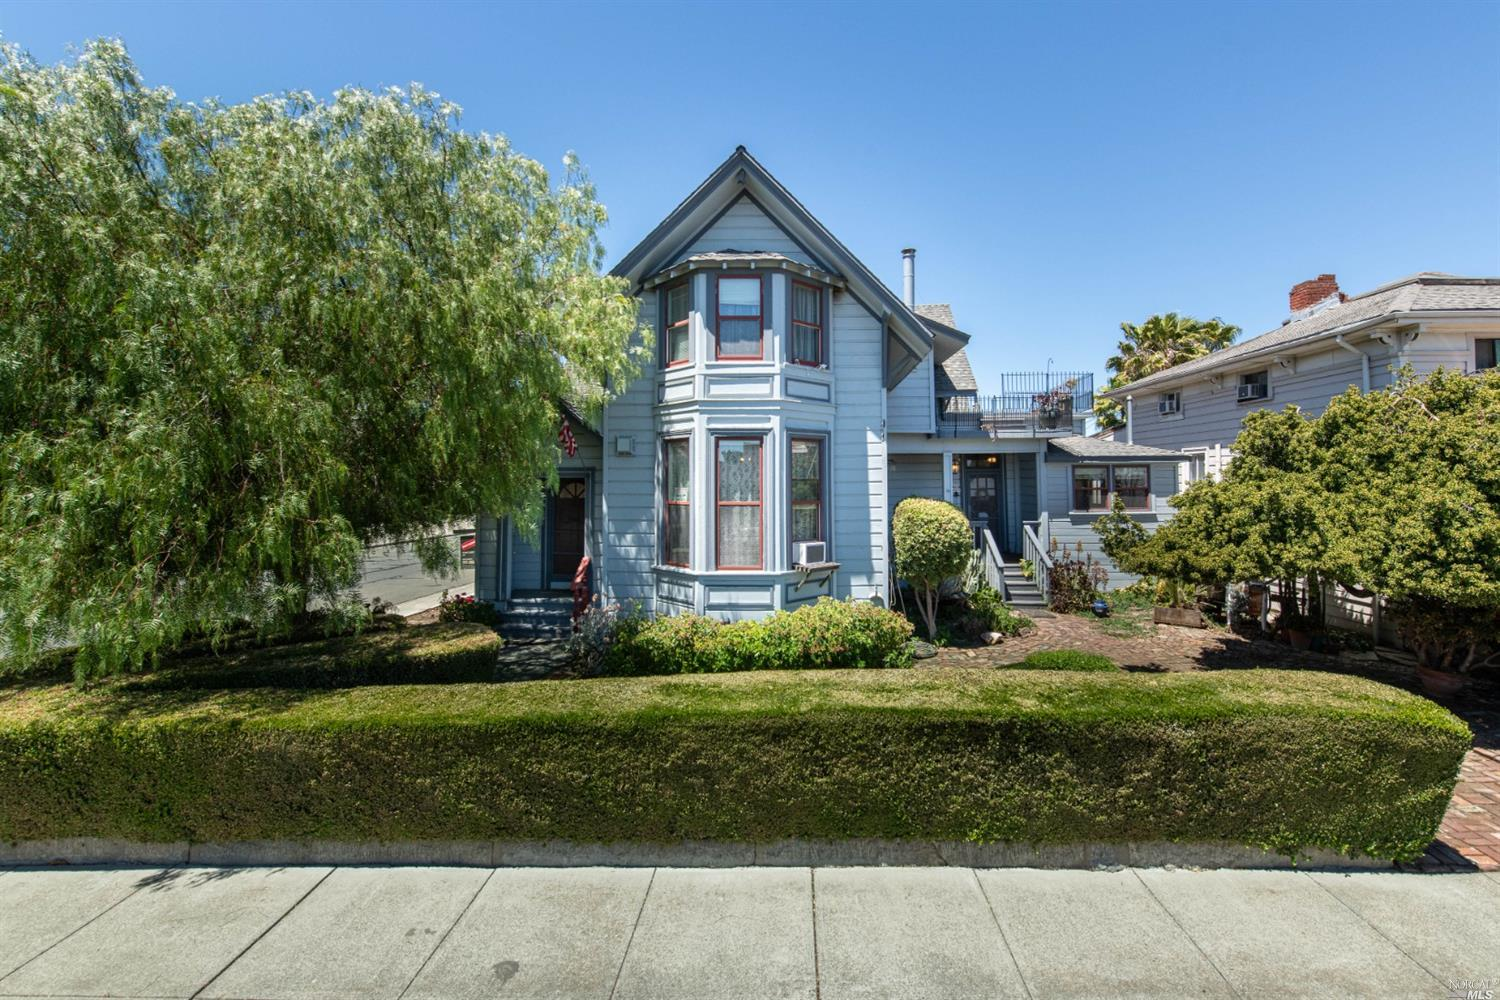 Have you been on the hunt for a Victorian on the Suisun waterfront? This charming Victorian has spac